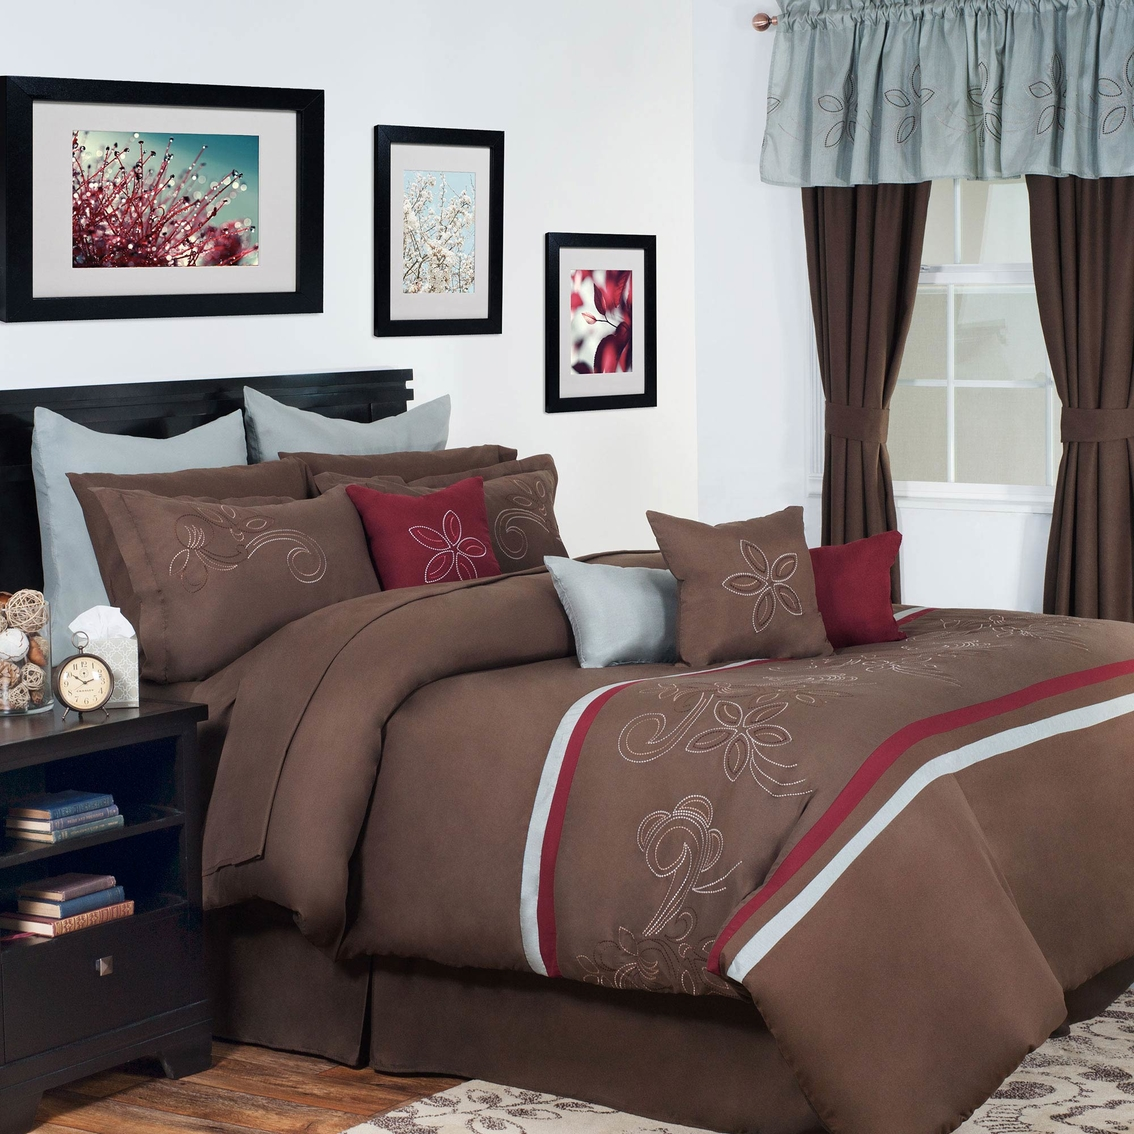 sets comforters products in room set a comforter piece maria k shopping bag lavish king yellow compare bedding home